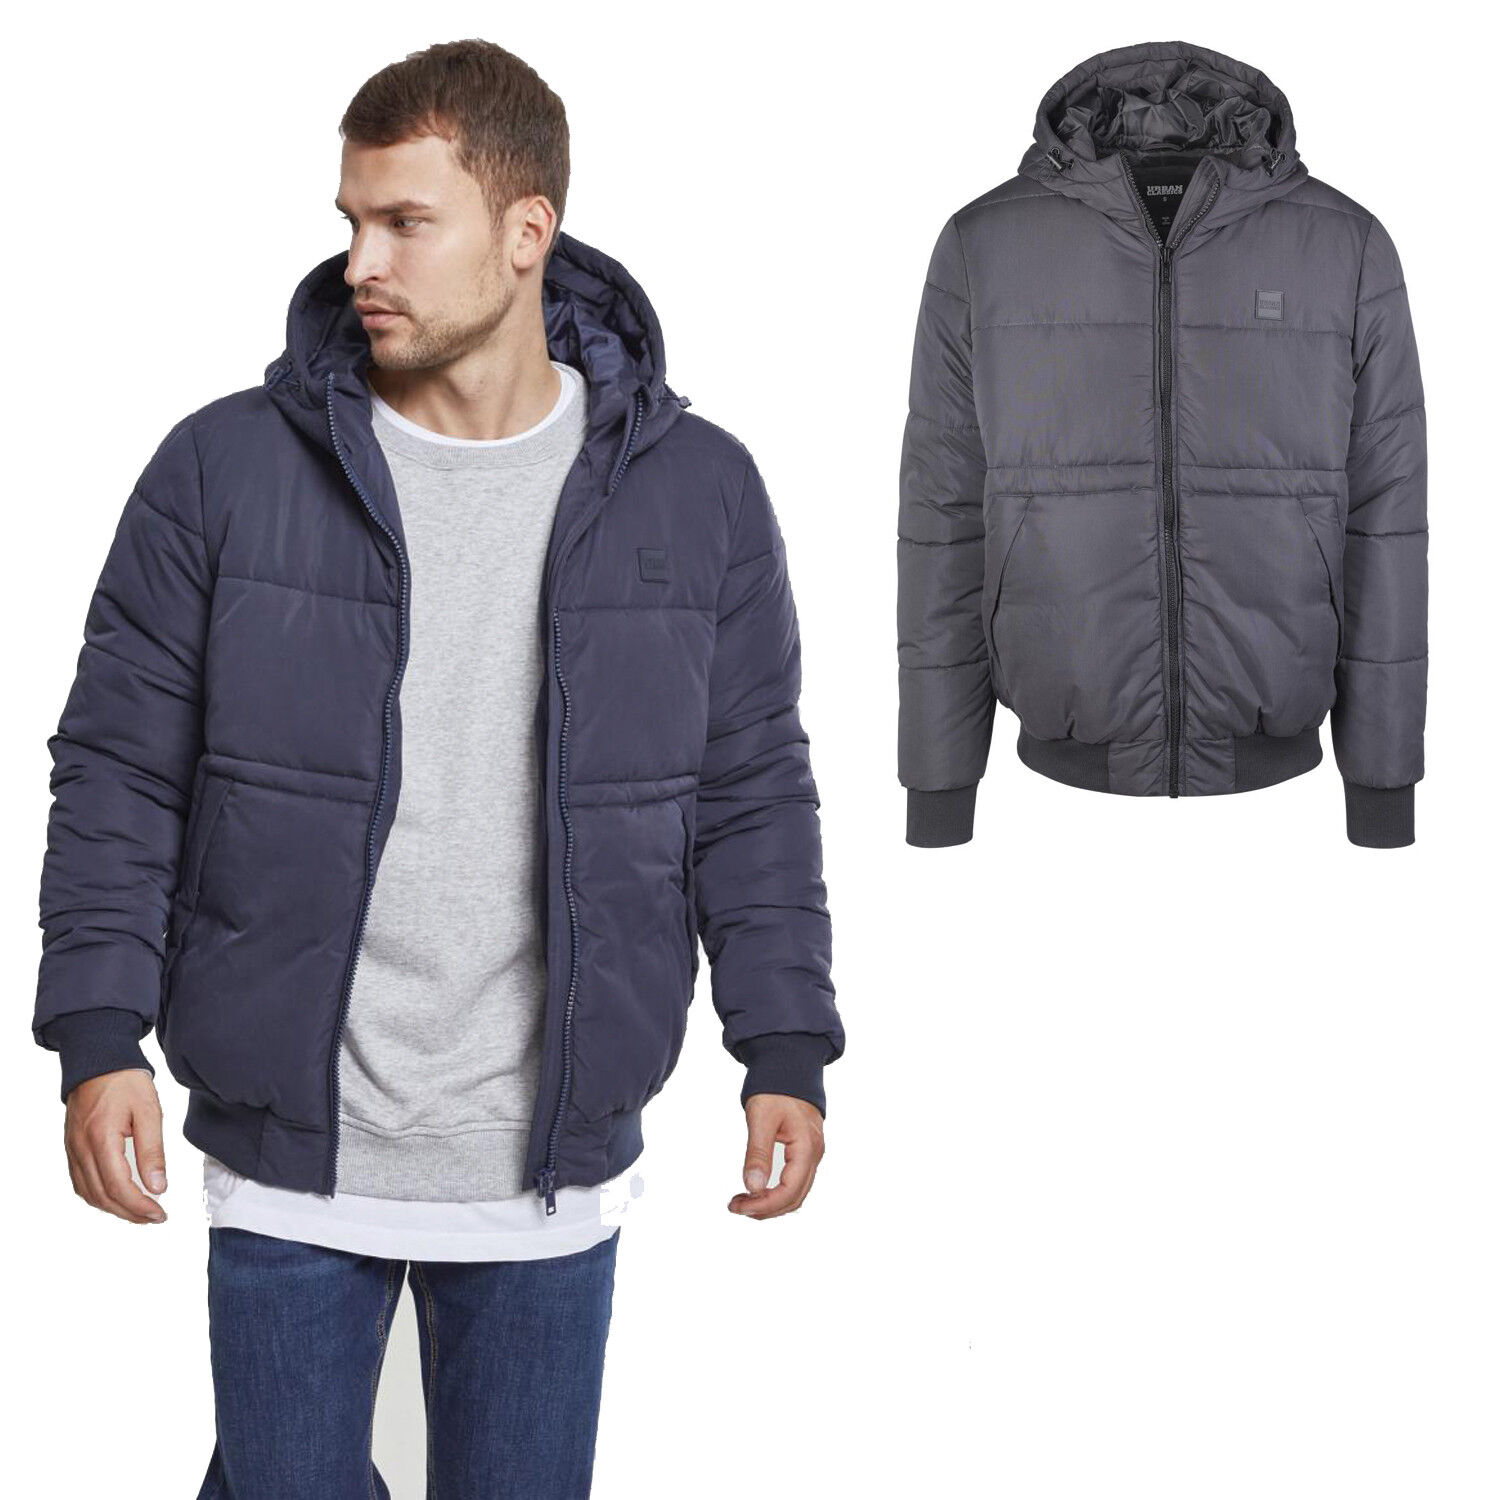 Details about Urban Classics Hooded Peach Puffer Winter Jacket Basic Quilted down Blanko